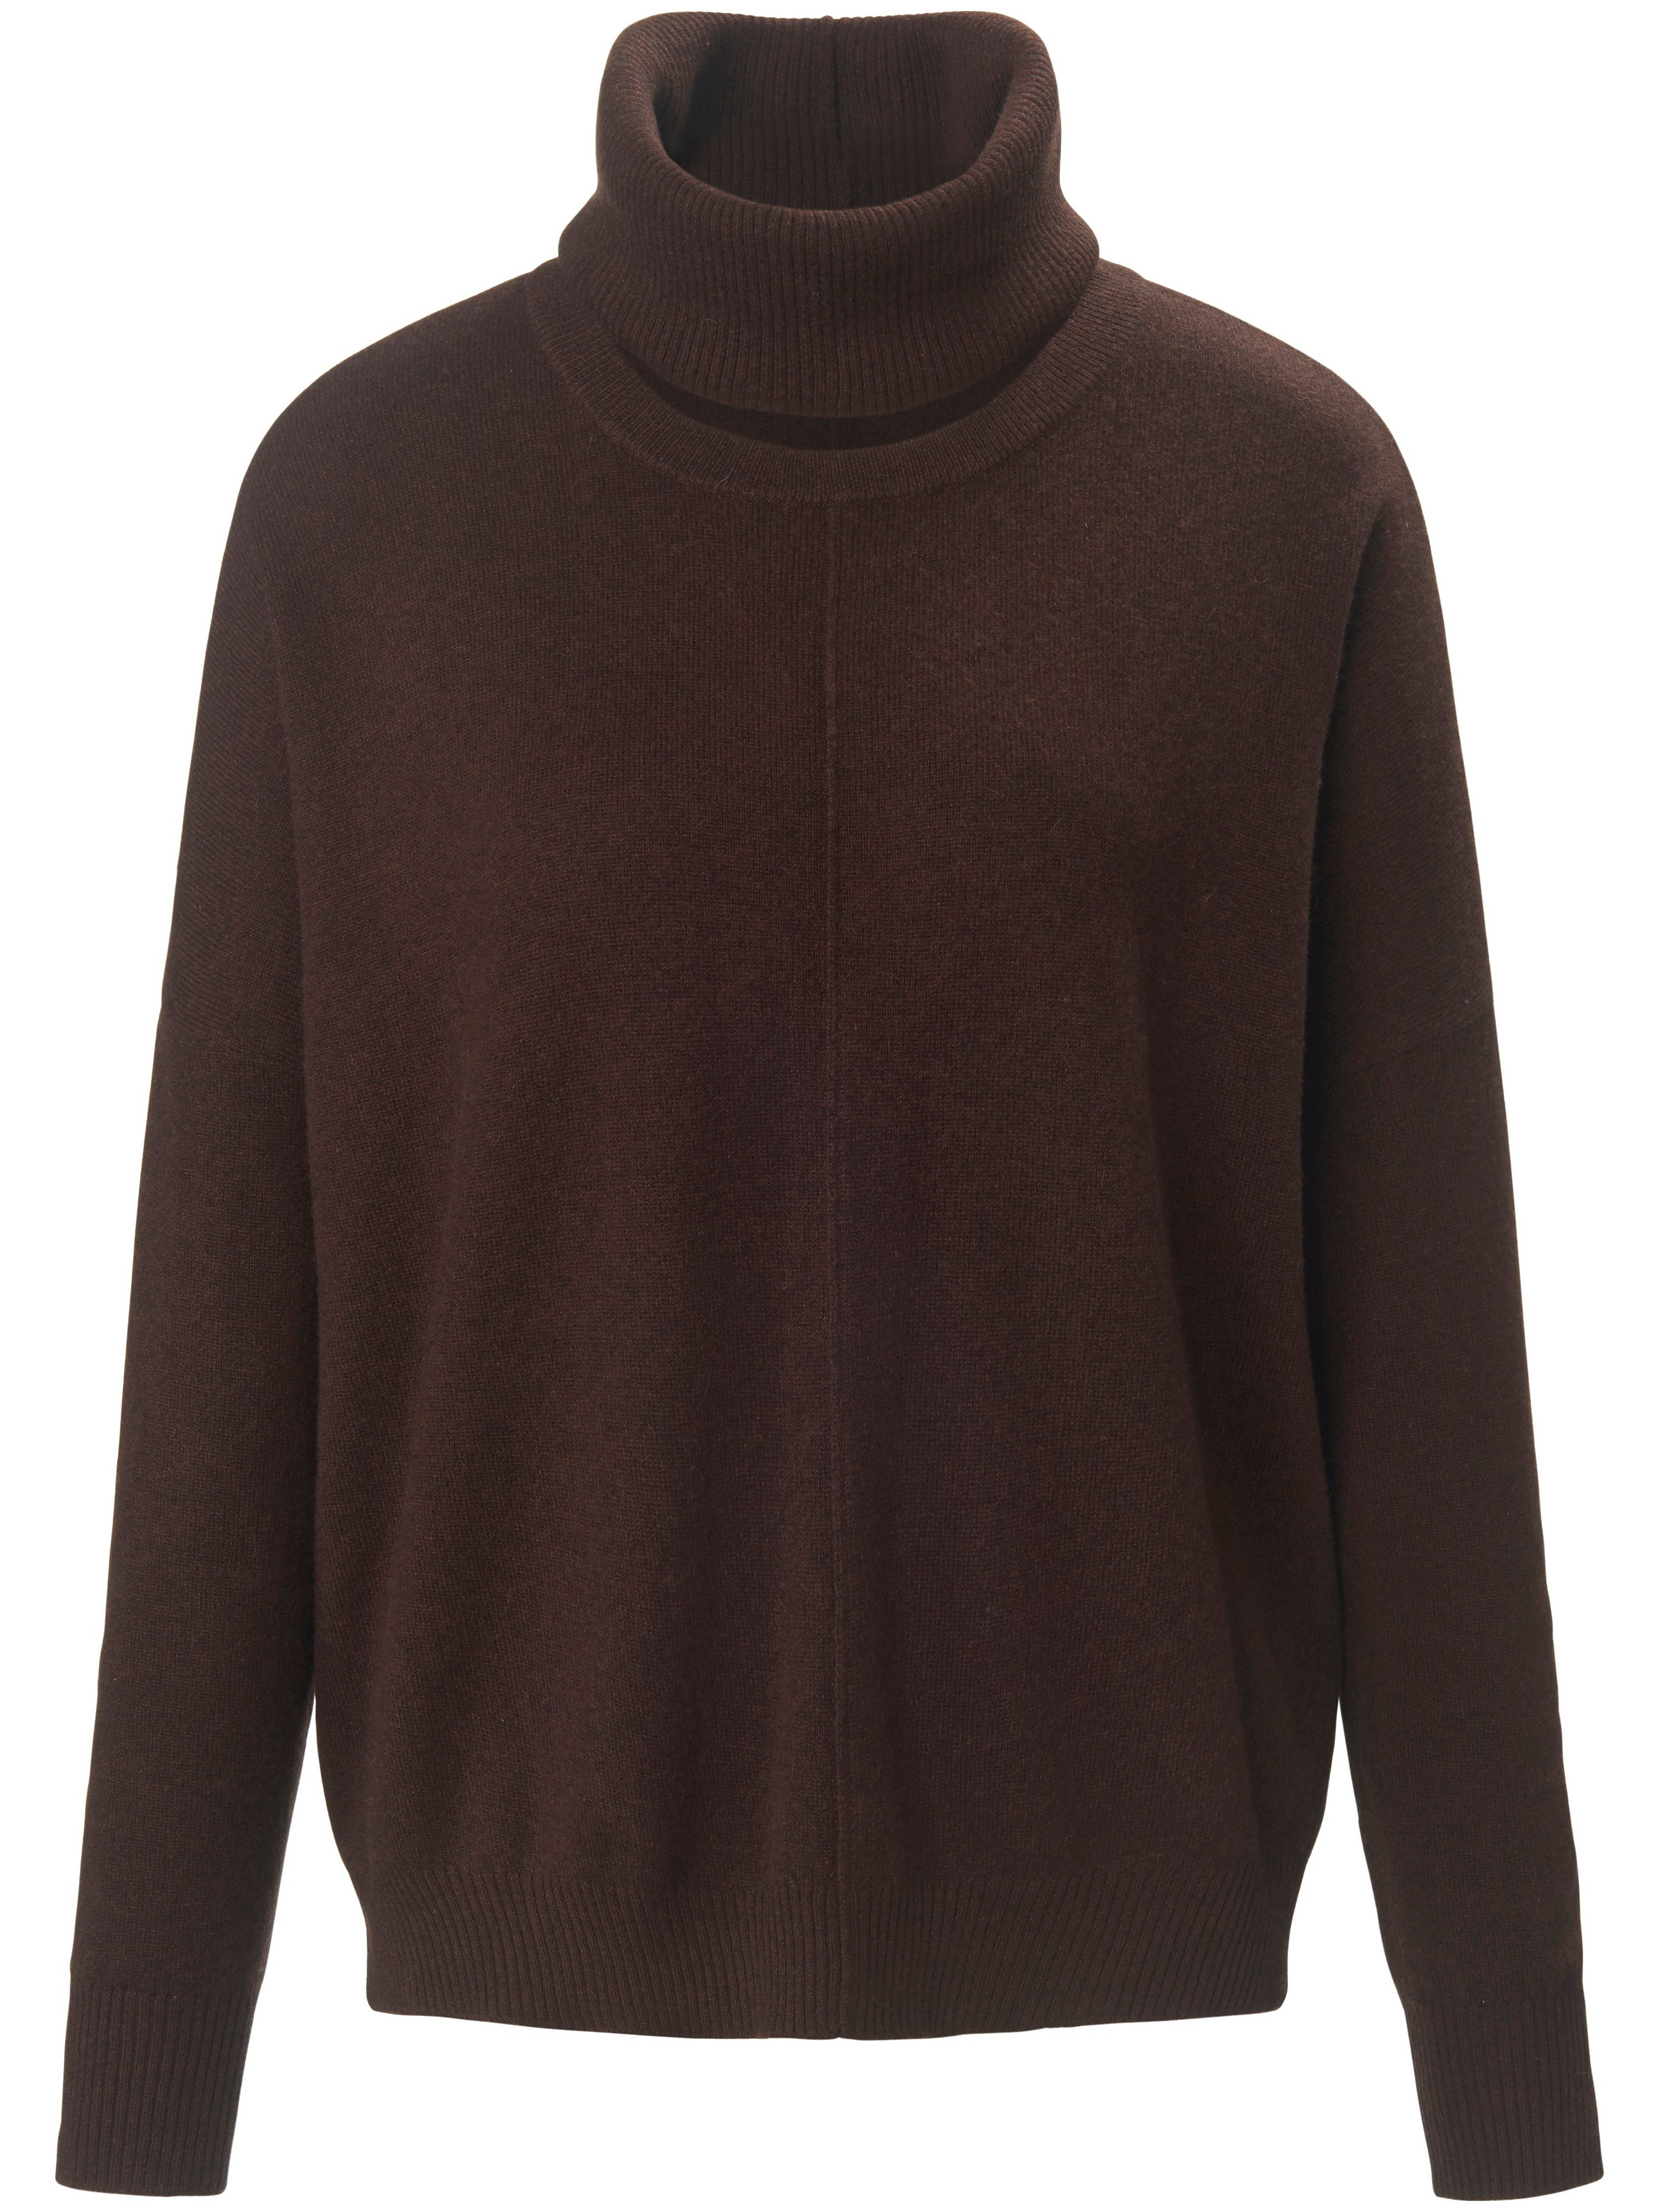 Le pull 100% cachemire  include marron taille 40